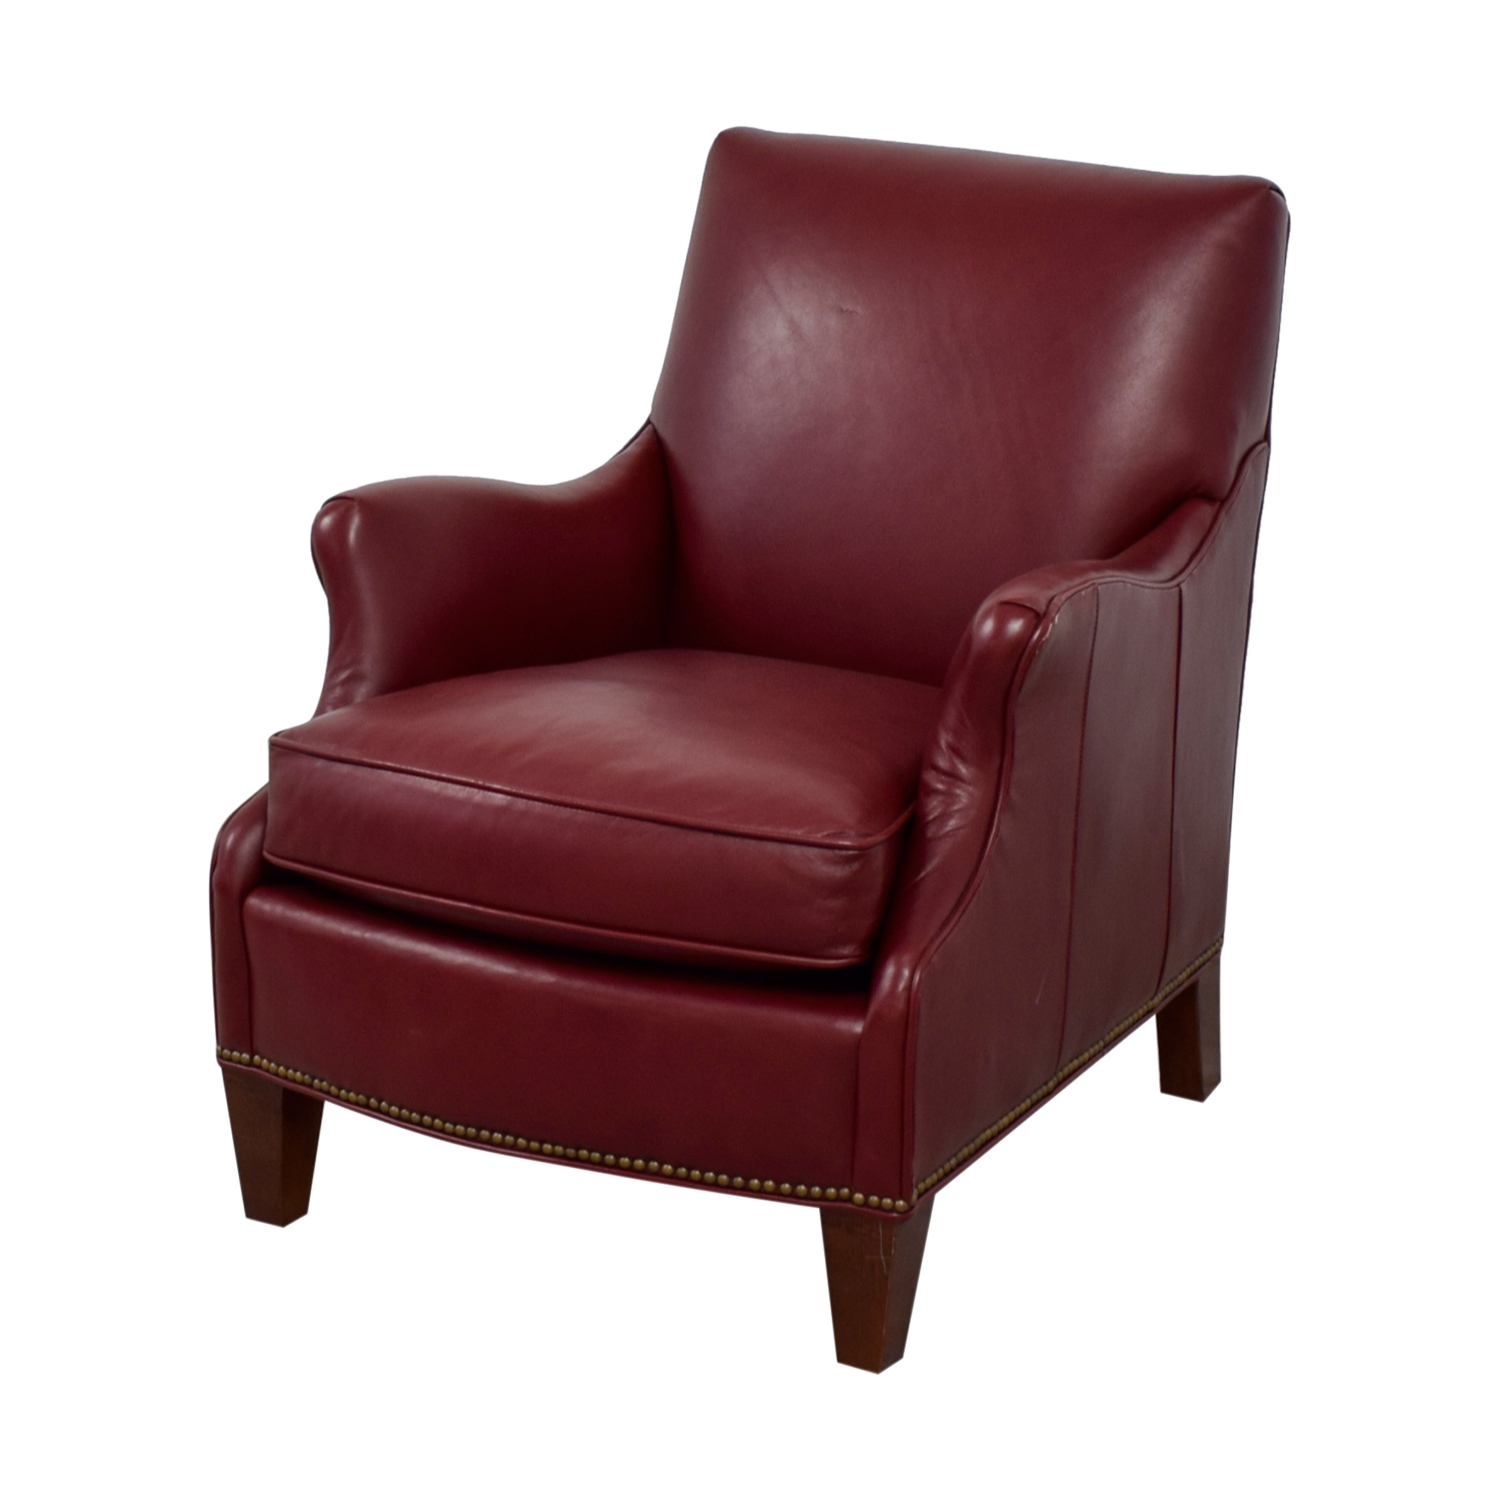 88 OFF  Sam Moore Sam Moore Red Leather Accent Chair